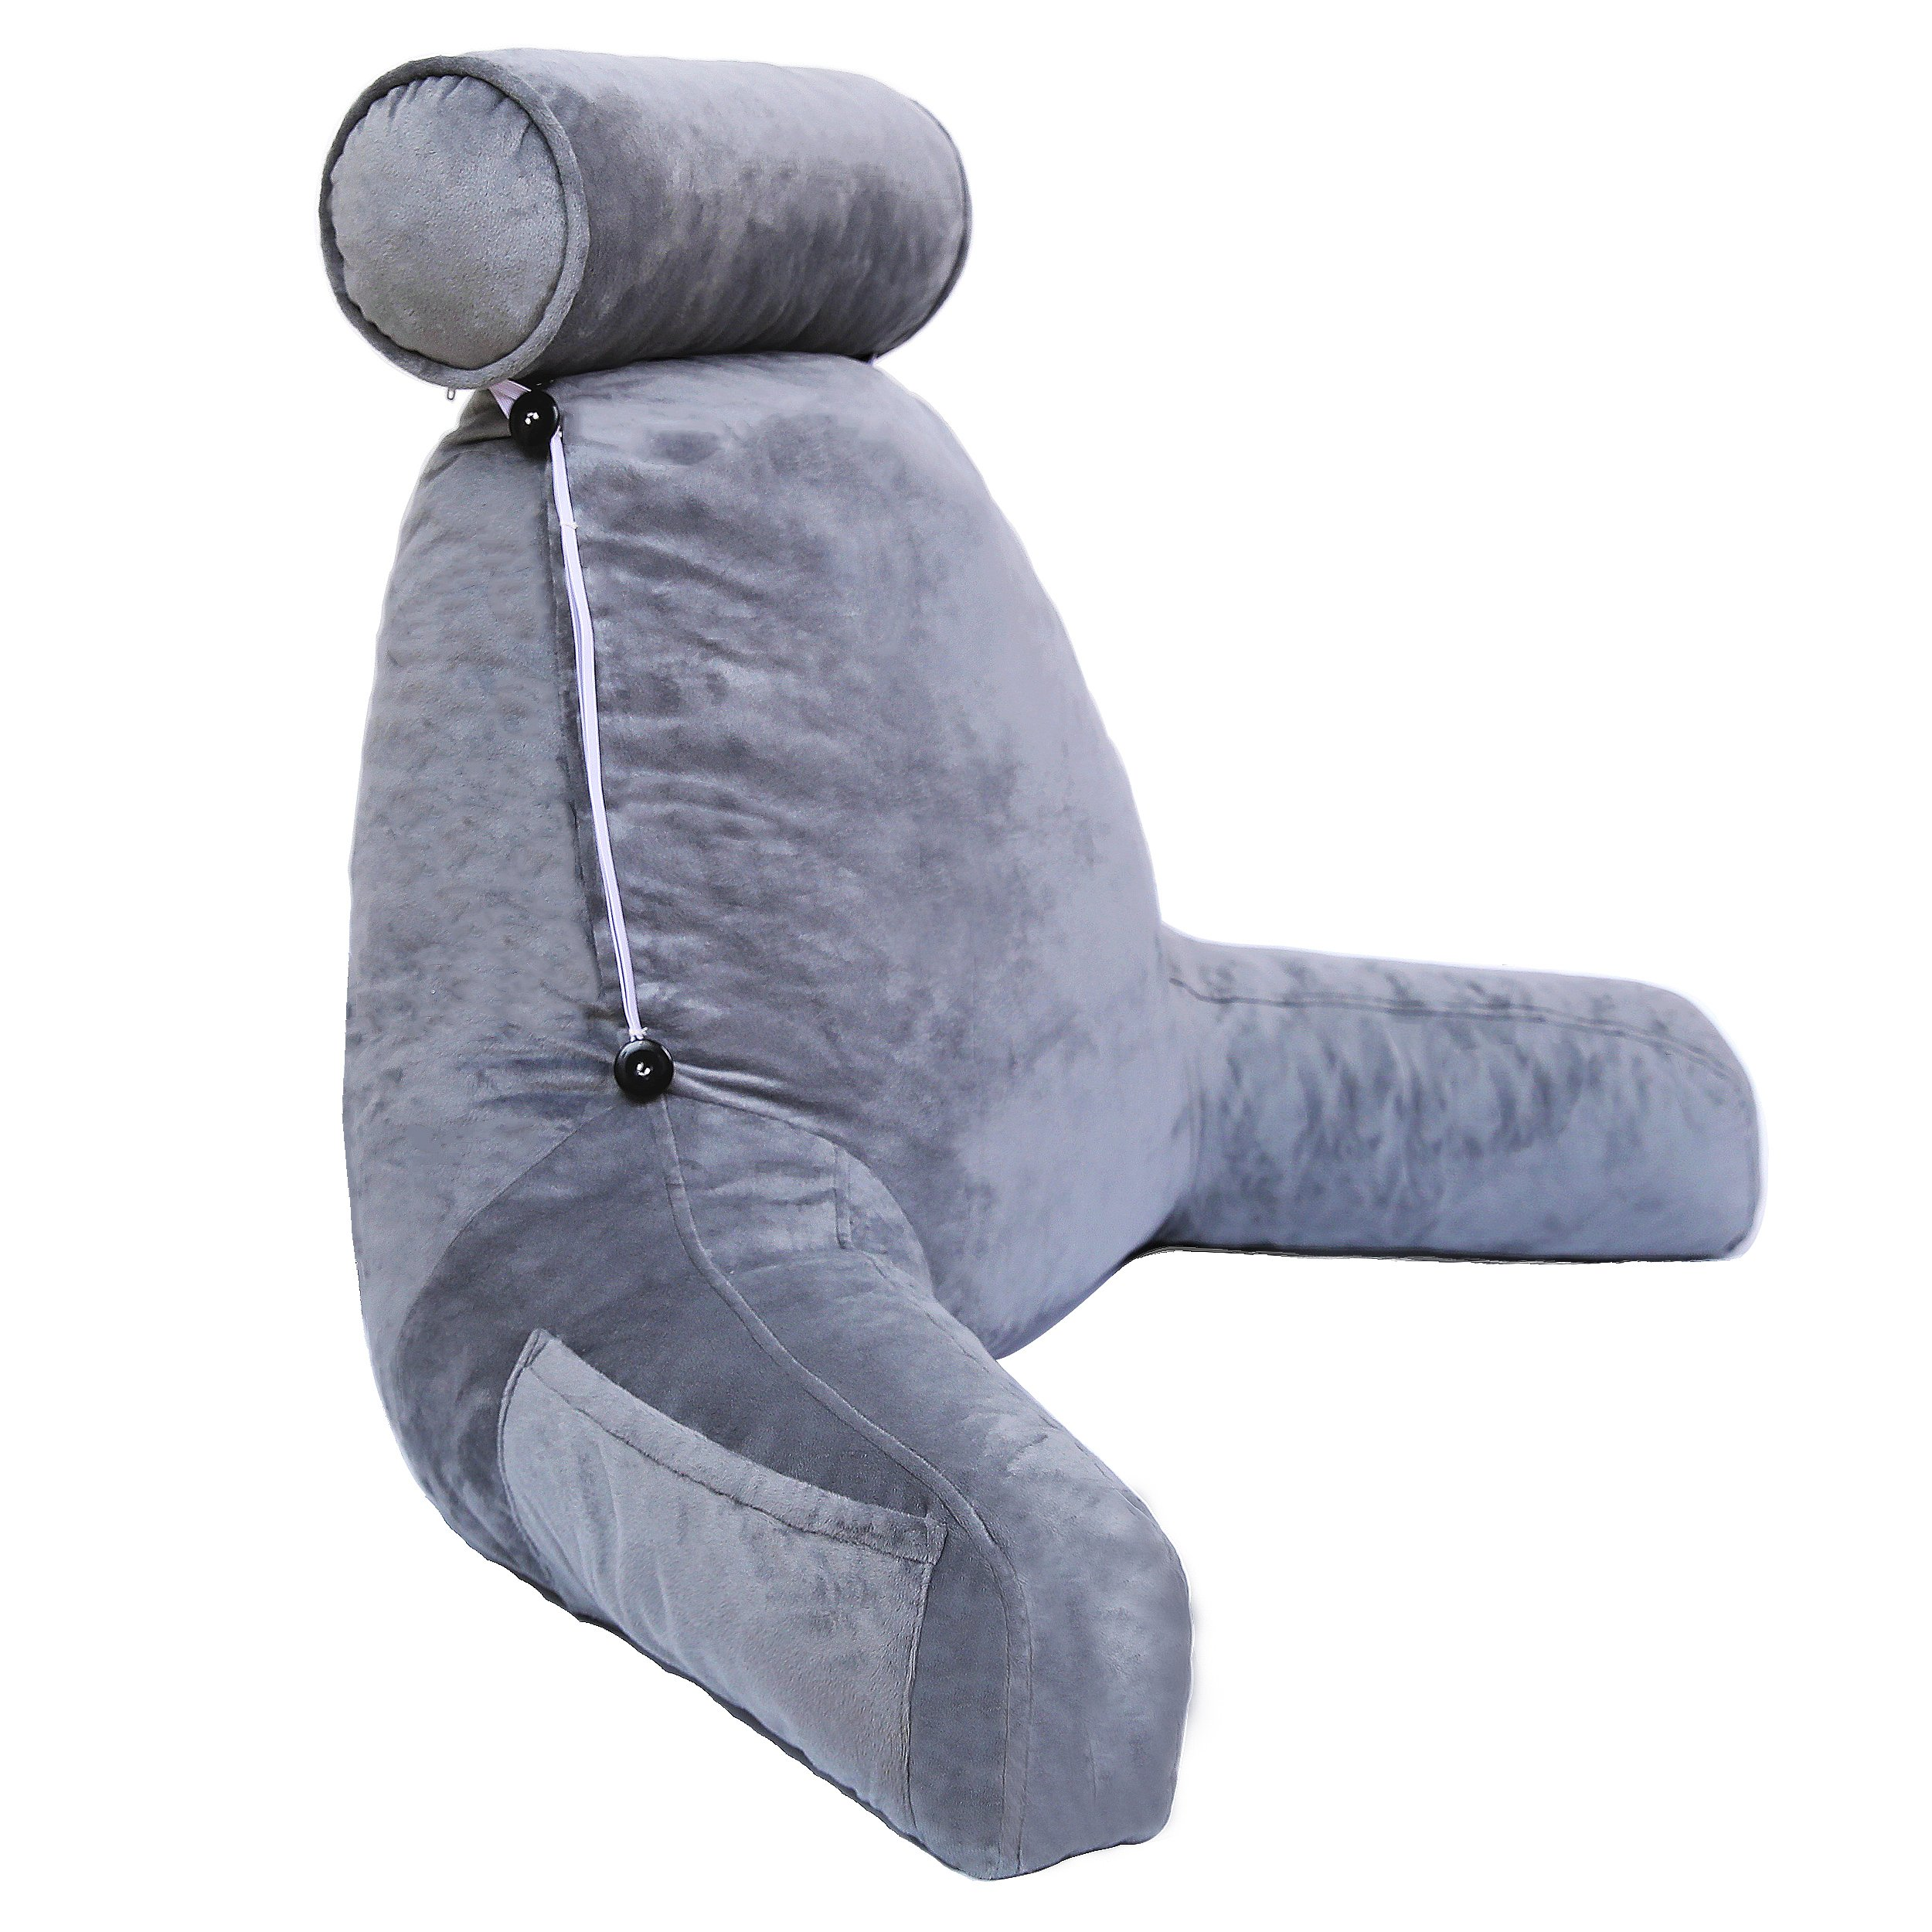 HZDY Large Backrest Pillow Rest Cushion Reading and TV Pillow, Detachable Neck Pillow, Removable and Washable Coat Gray, Advanced Memory Foam Blend Fill, Pregnant Women Cushions Lumbar Pad.